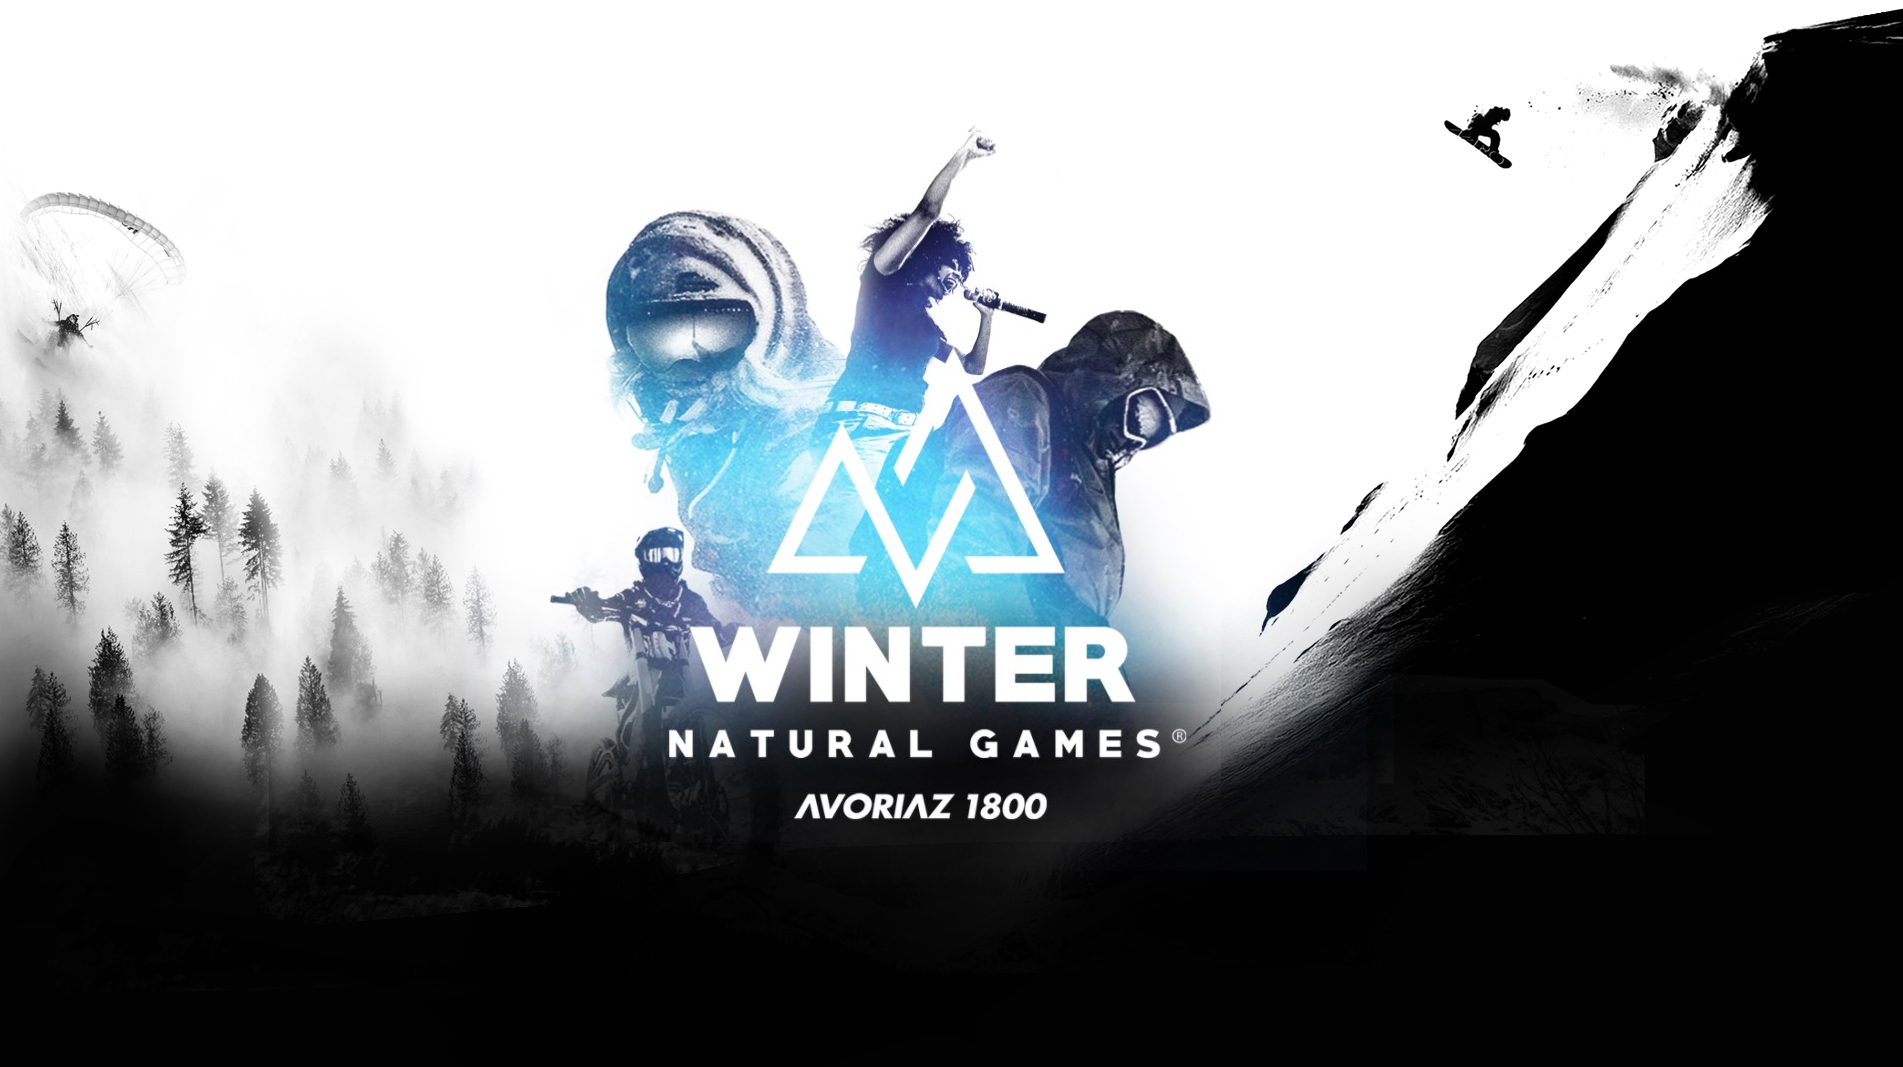 Natural Games Winter 2018